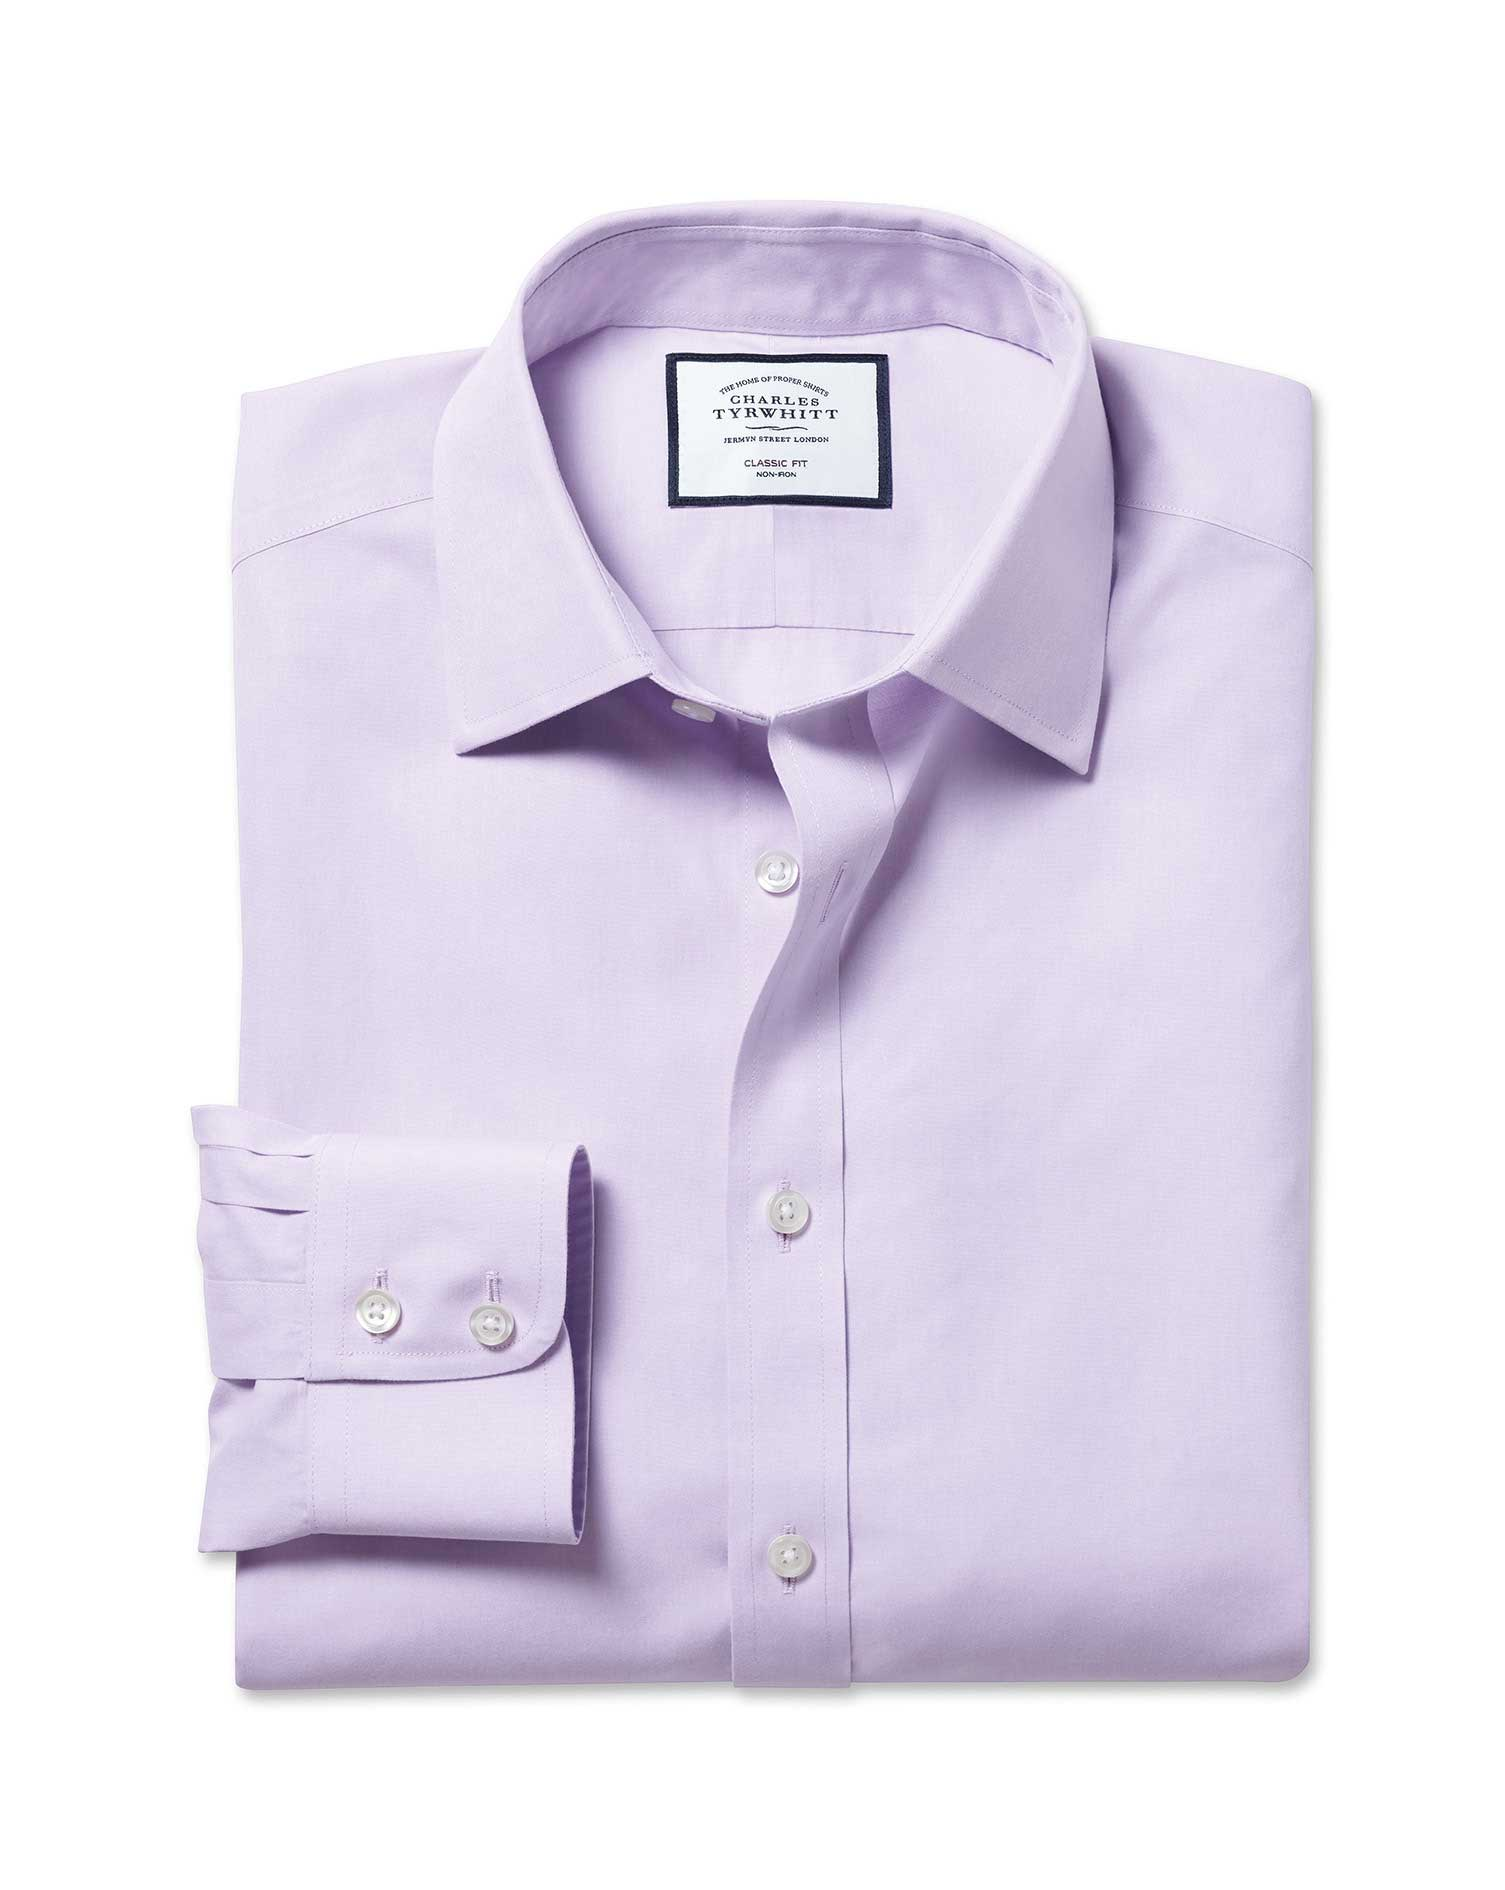 Classic Fit Non-Iron Poplin Lilac Cotton Formal Shirt Double Cuff Size 17.5/38 by Charles Tyrwhitt